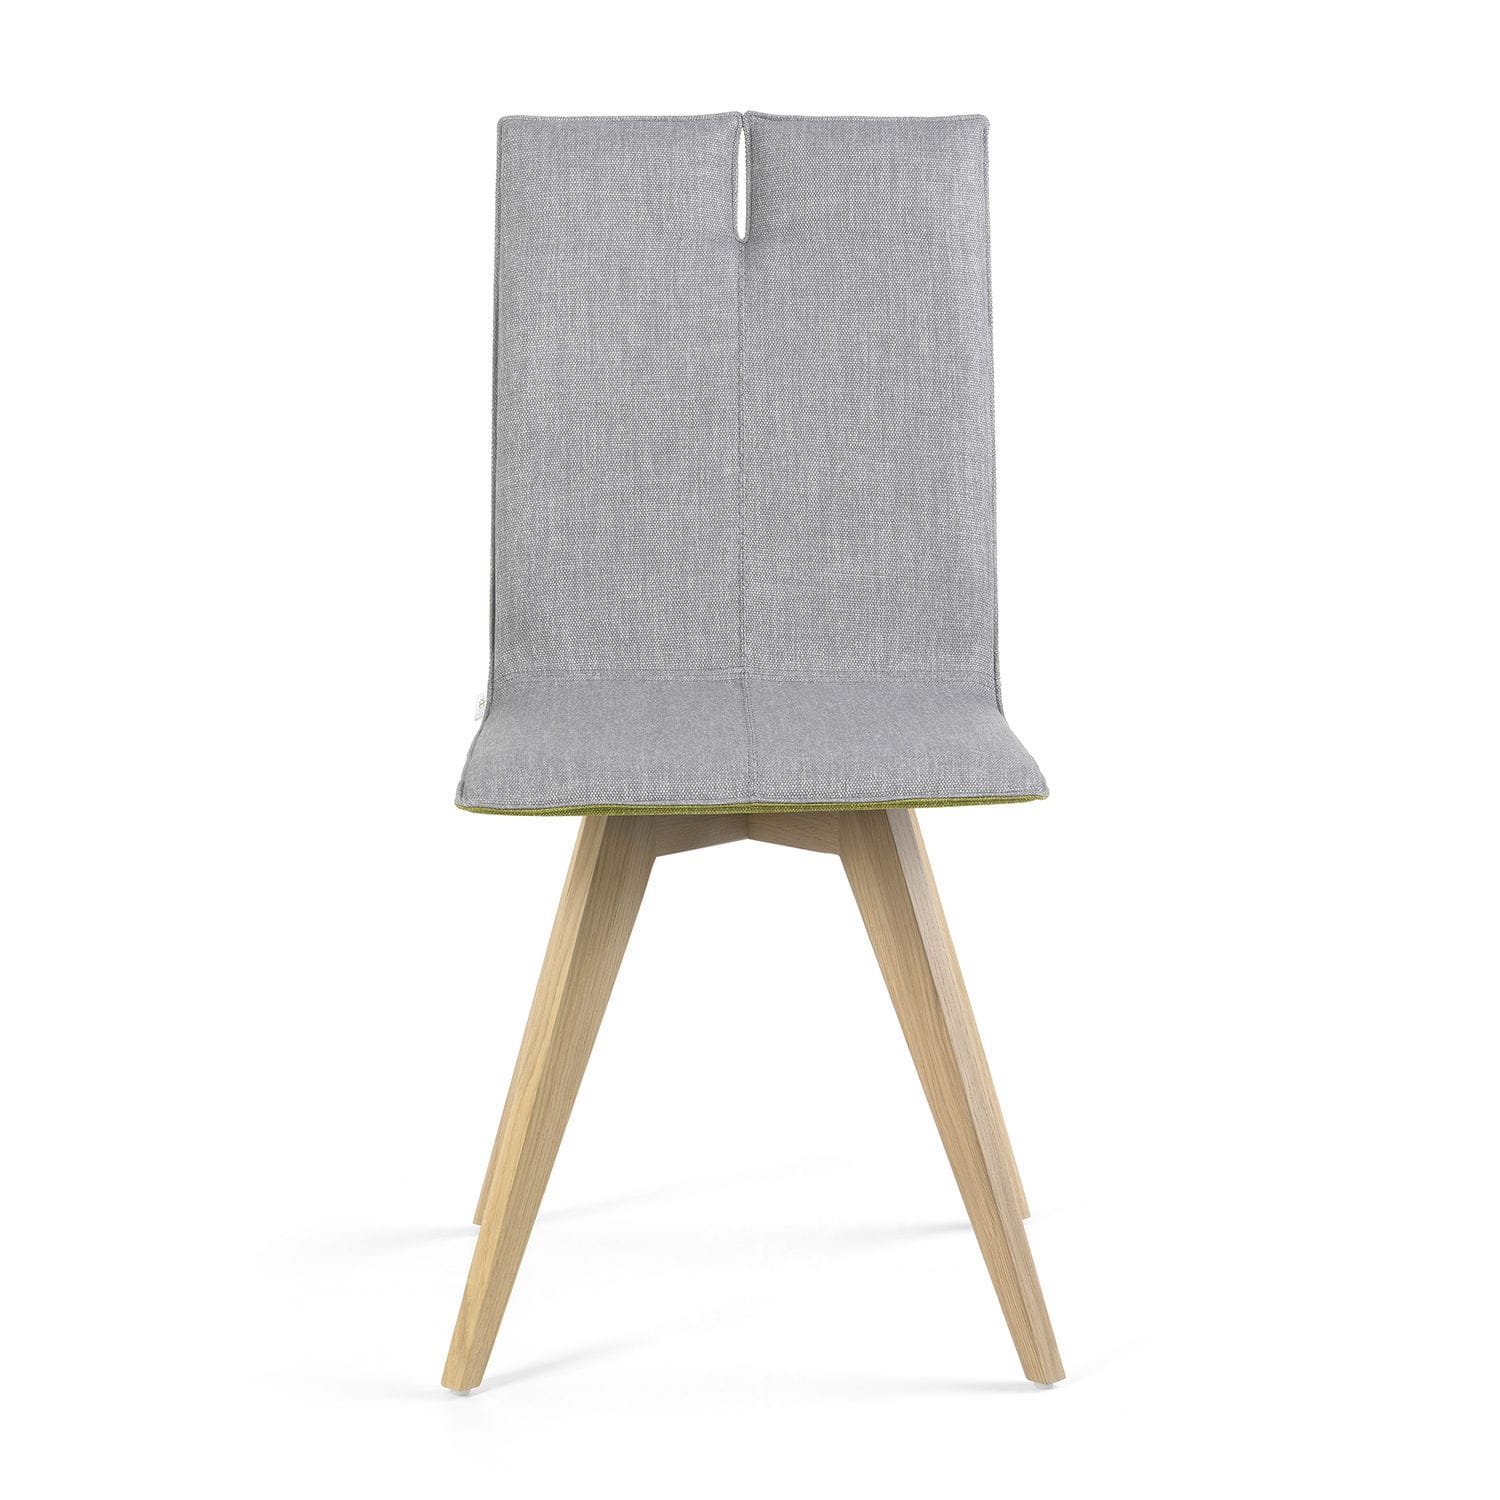 Contemporary Chair Upholstered Fsc Certified Fabric